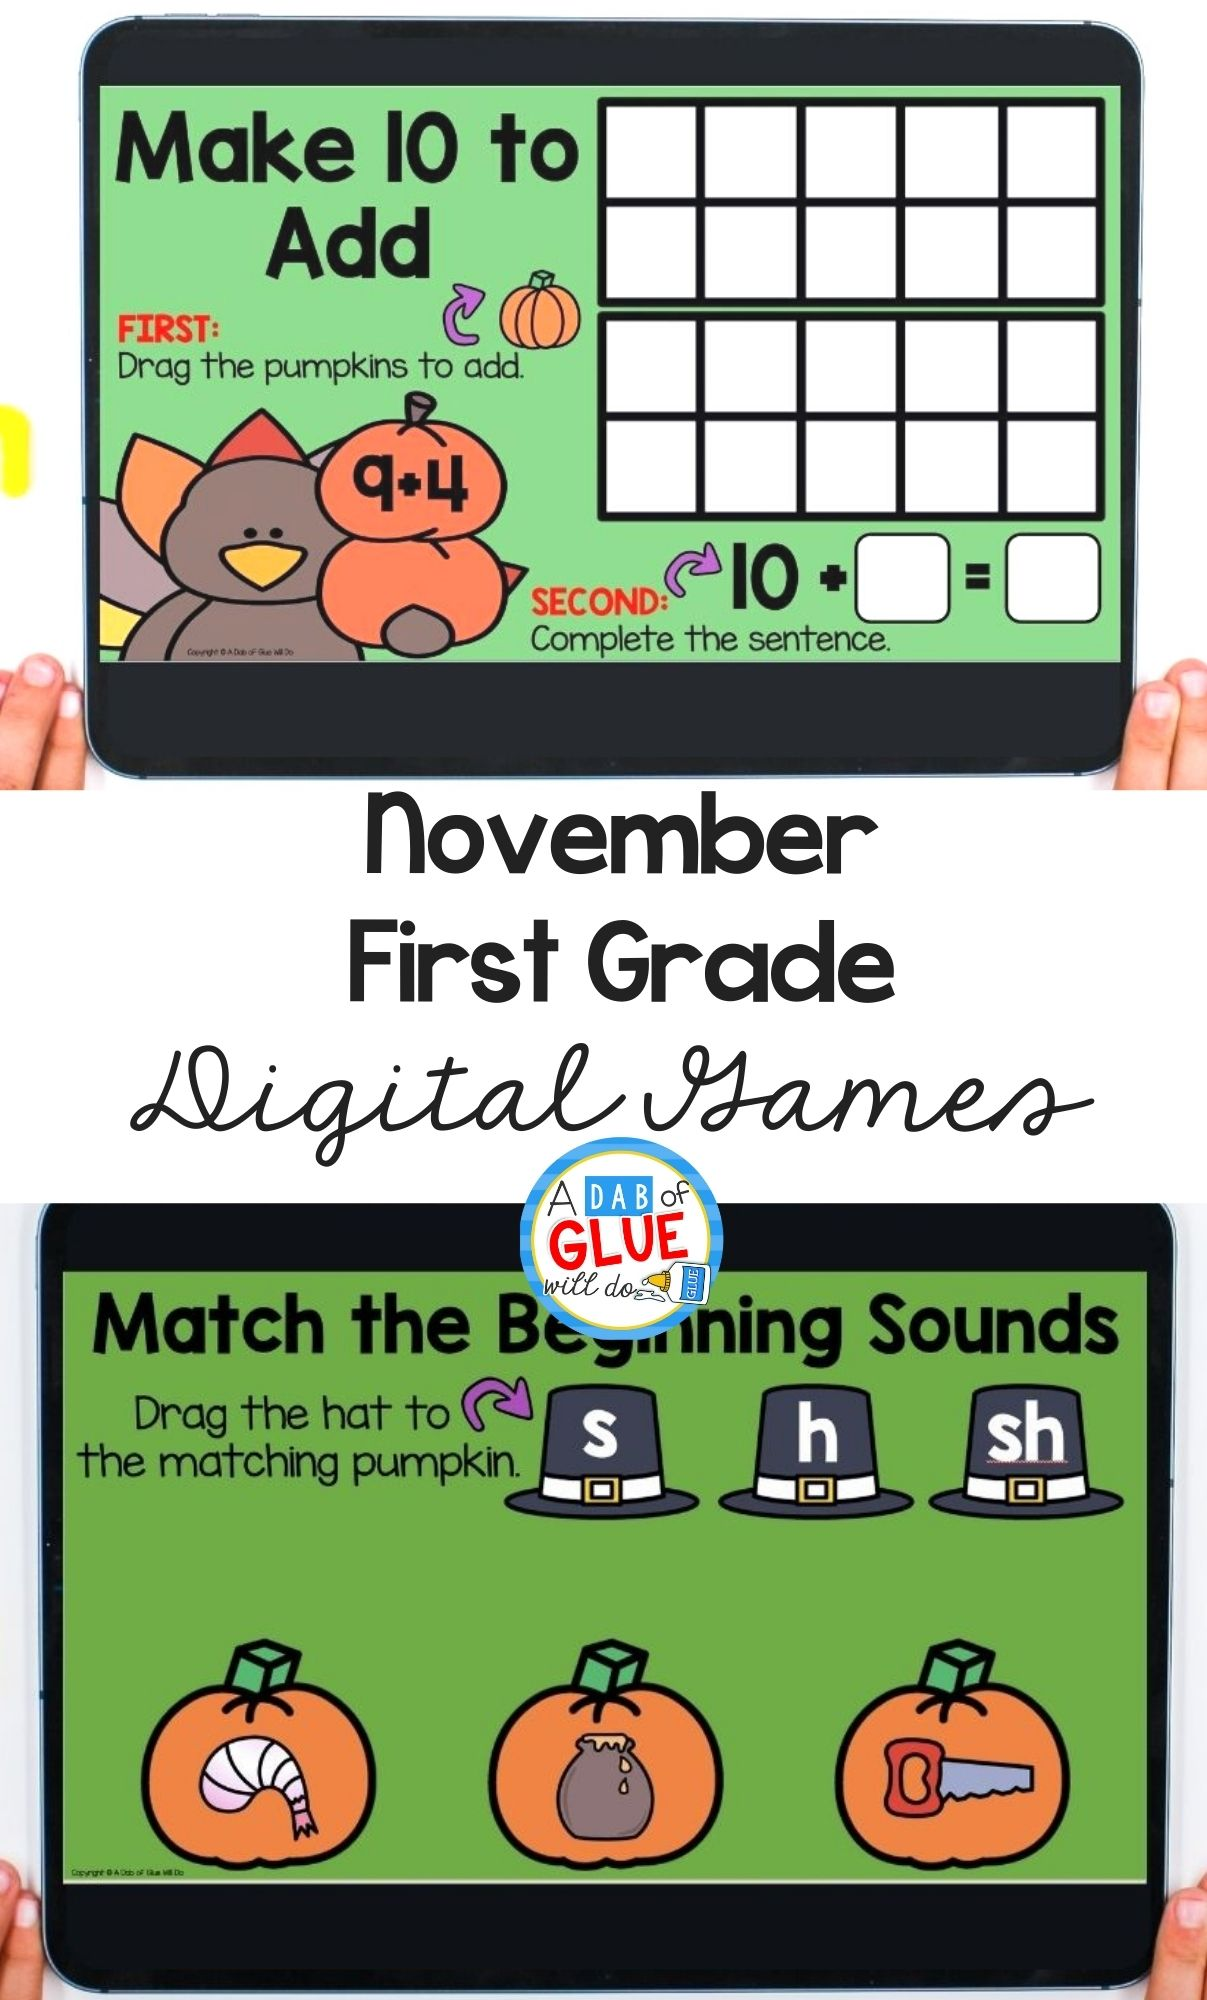 November Digital Games and Activities for First Grade